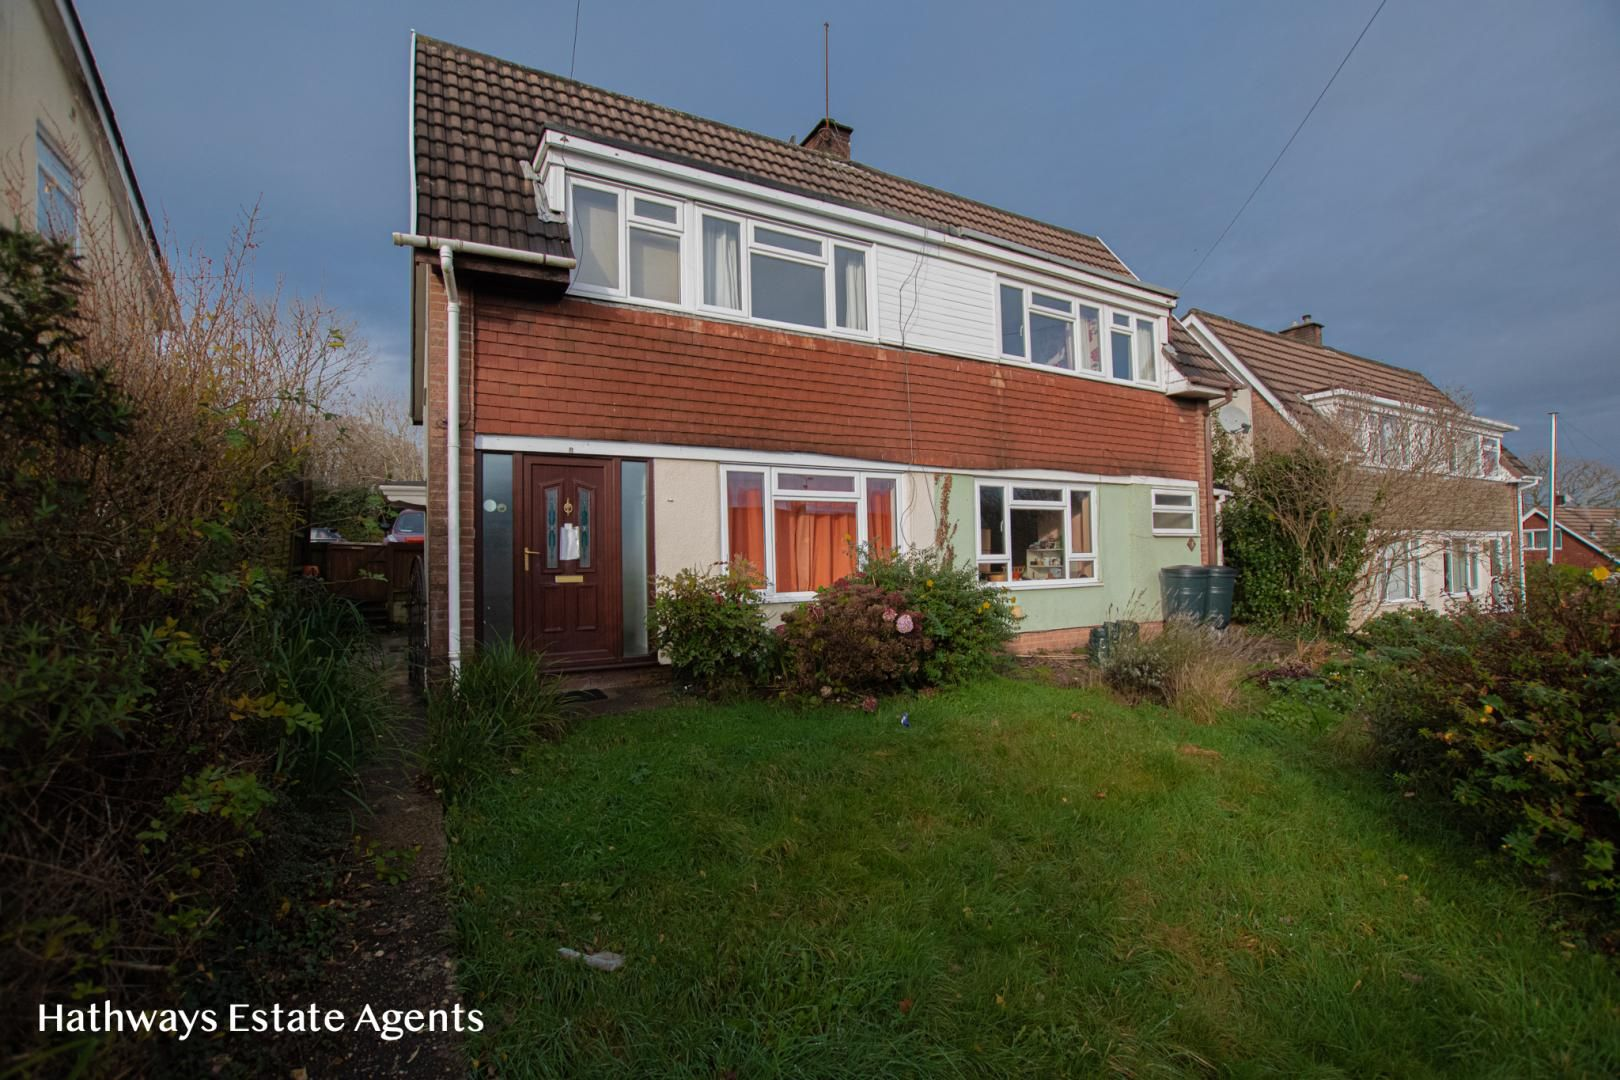 3 bed house to rent in Willow Green, NP18